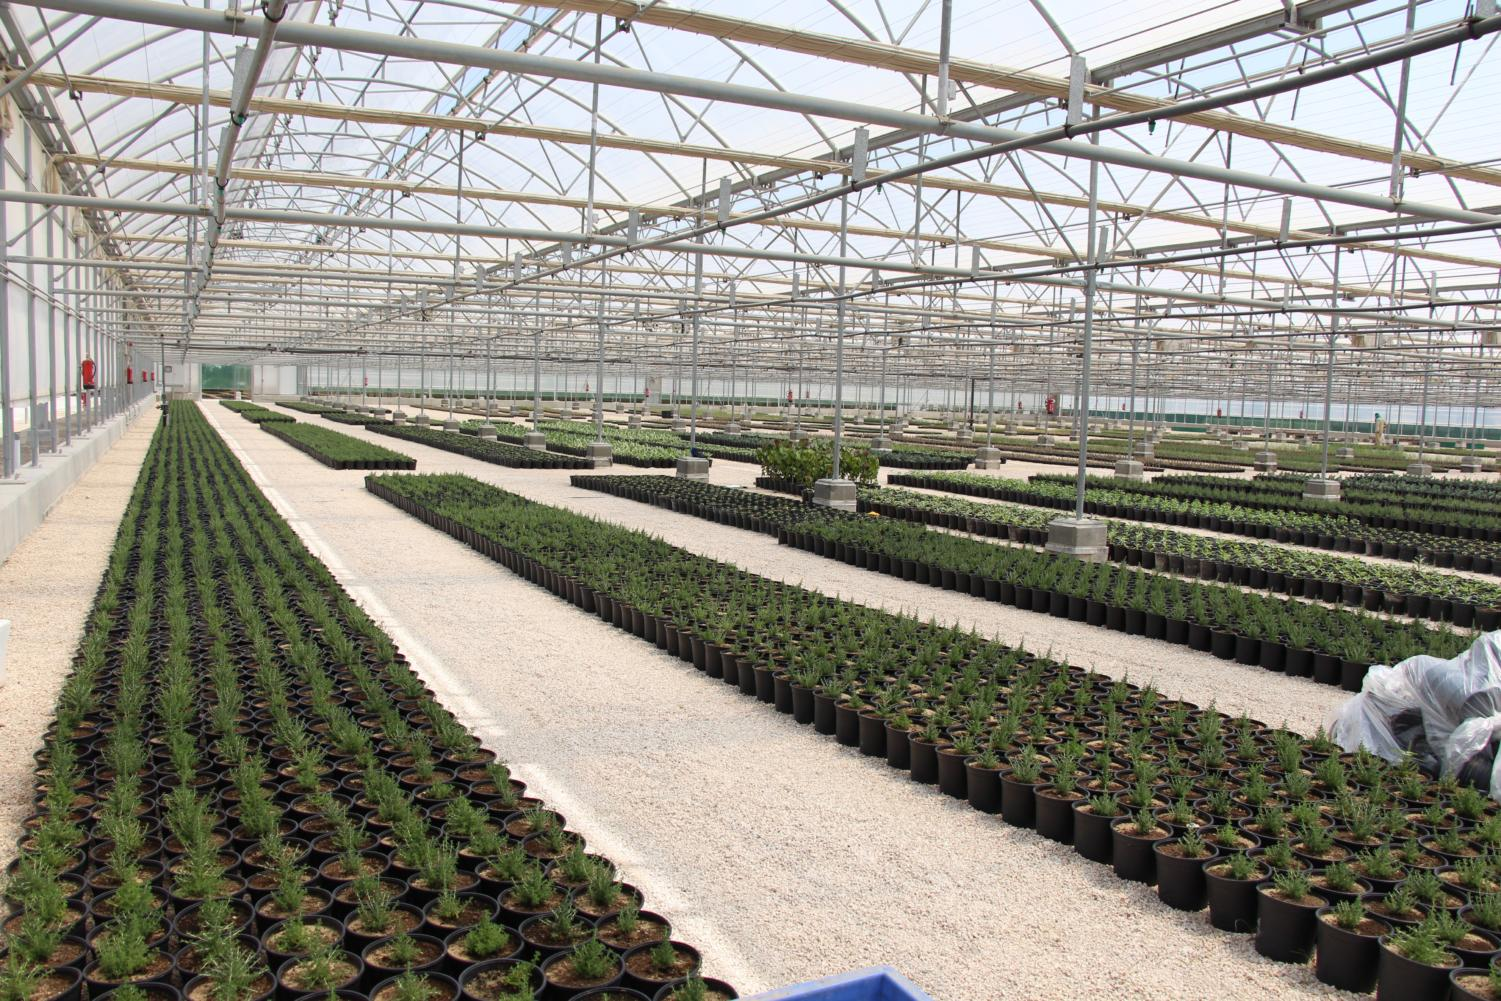 Plants+are+moved+from+their+natural+habitat+to+greenhouses+for+further+research+on+how+to+preserve+and+regrow+them.%0A